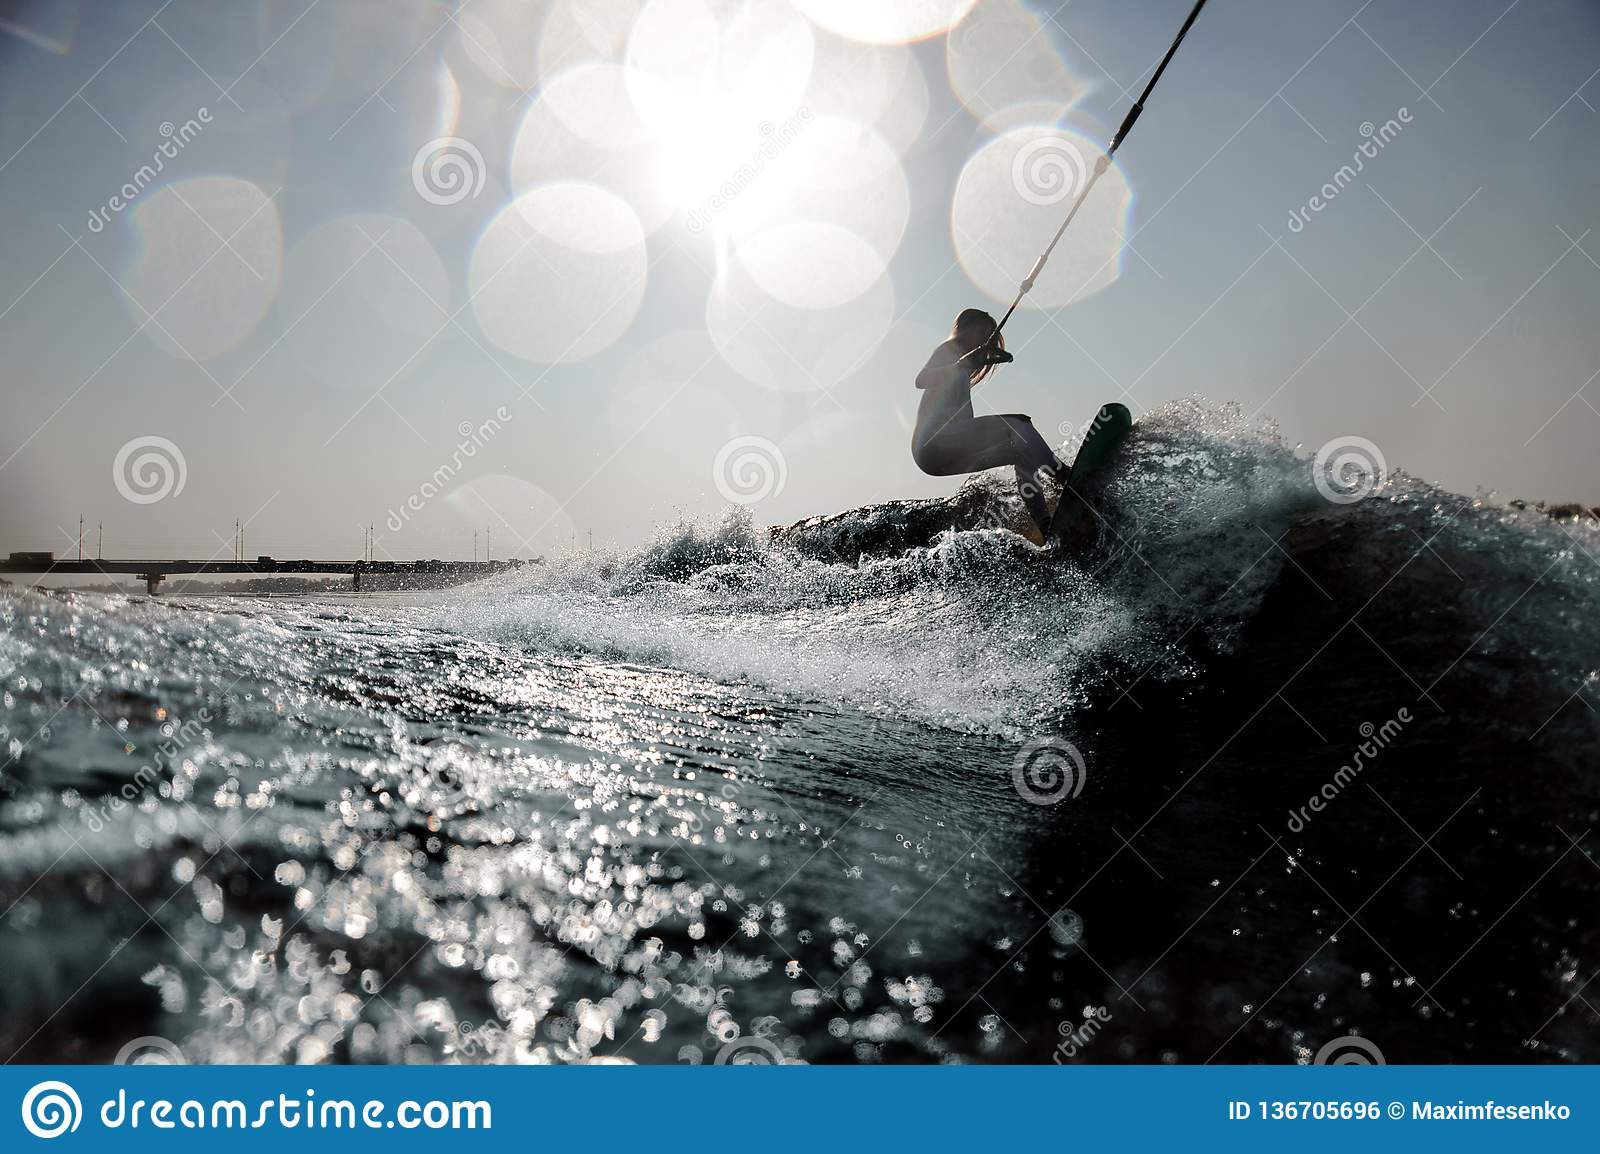 Blonde girl riding on the wakeboard holding a rope